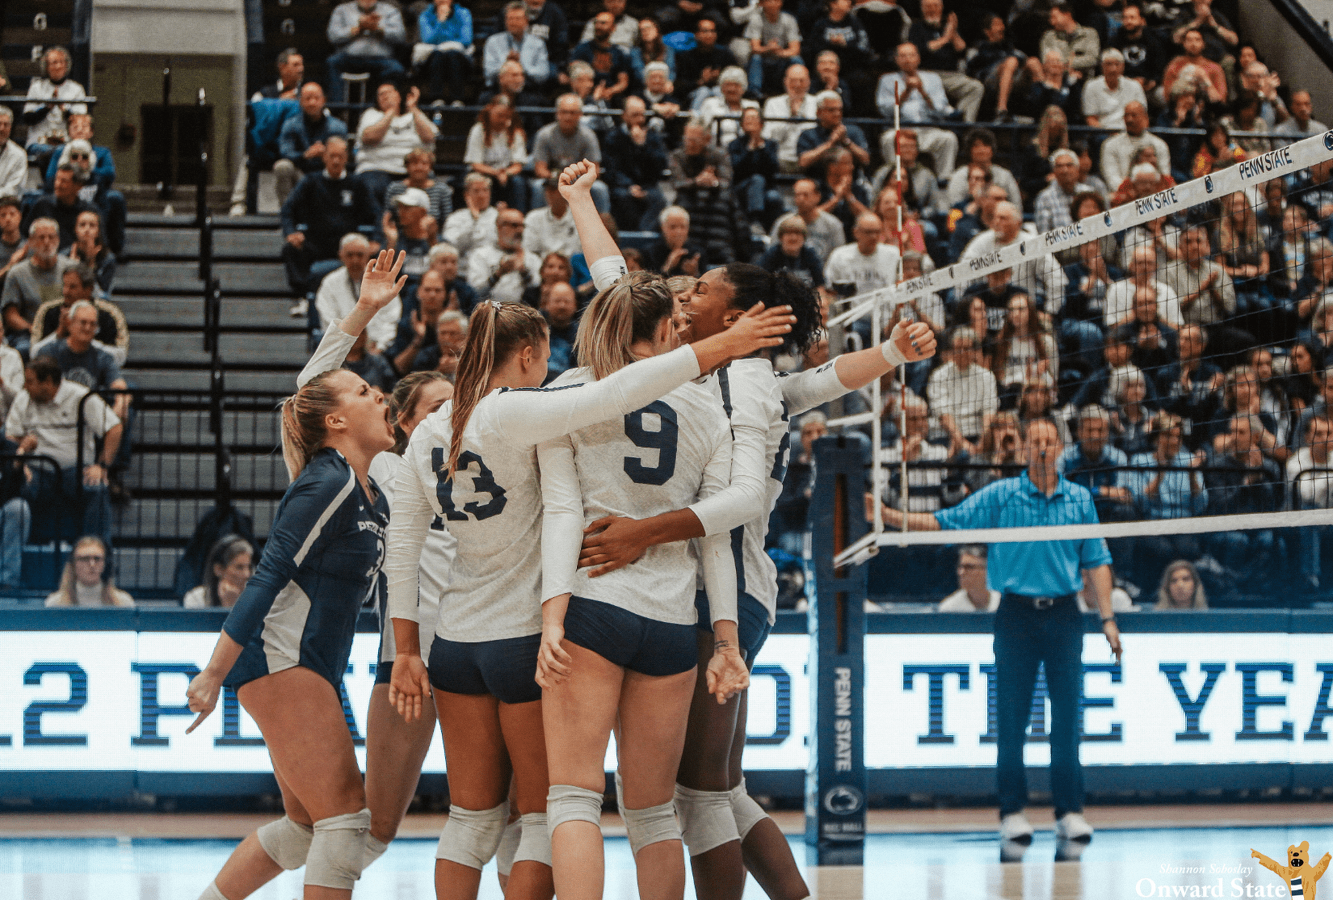 State College Pa Penn State Women S Volleyball Gearing Up For West Coast Ncaa Tourney Road Trip